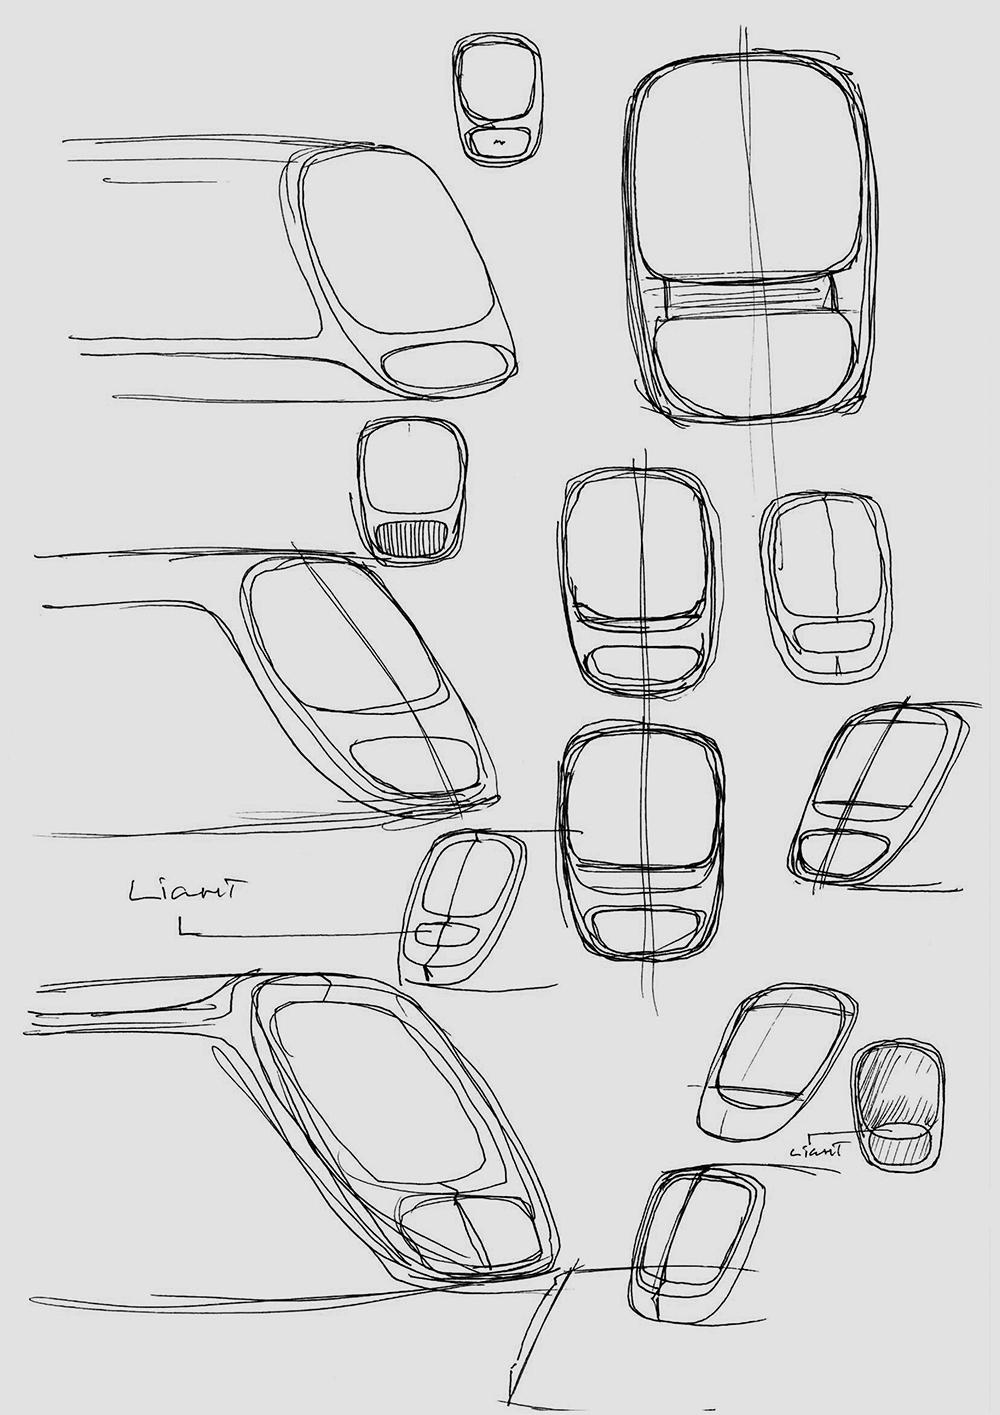 Ora ïto's first sketches of the new tram